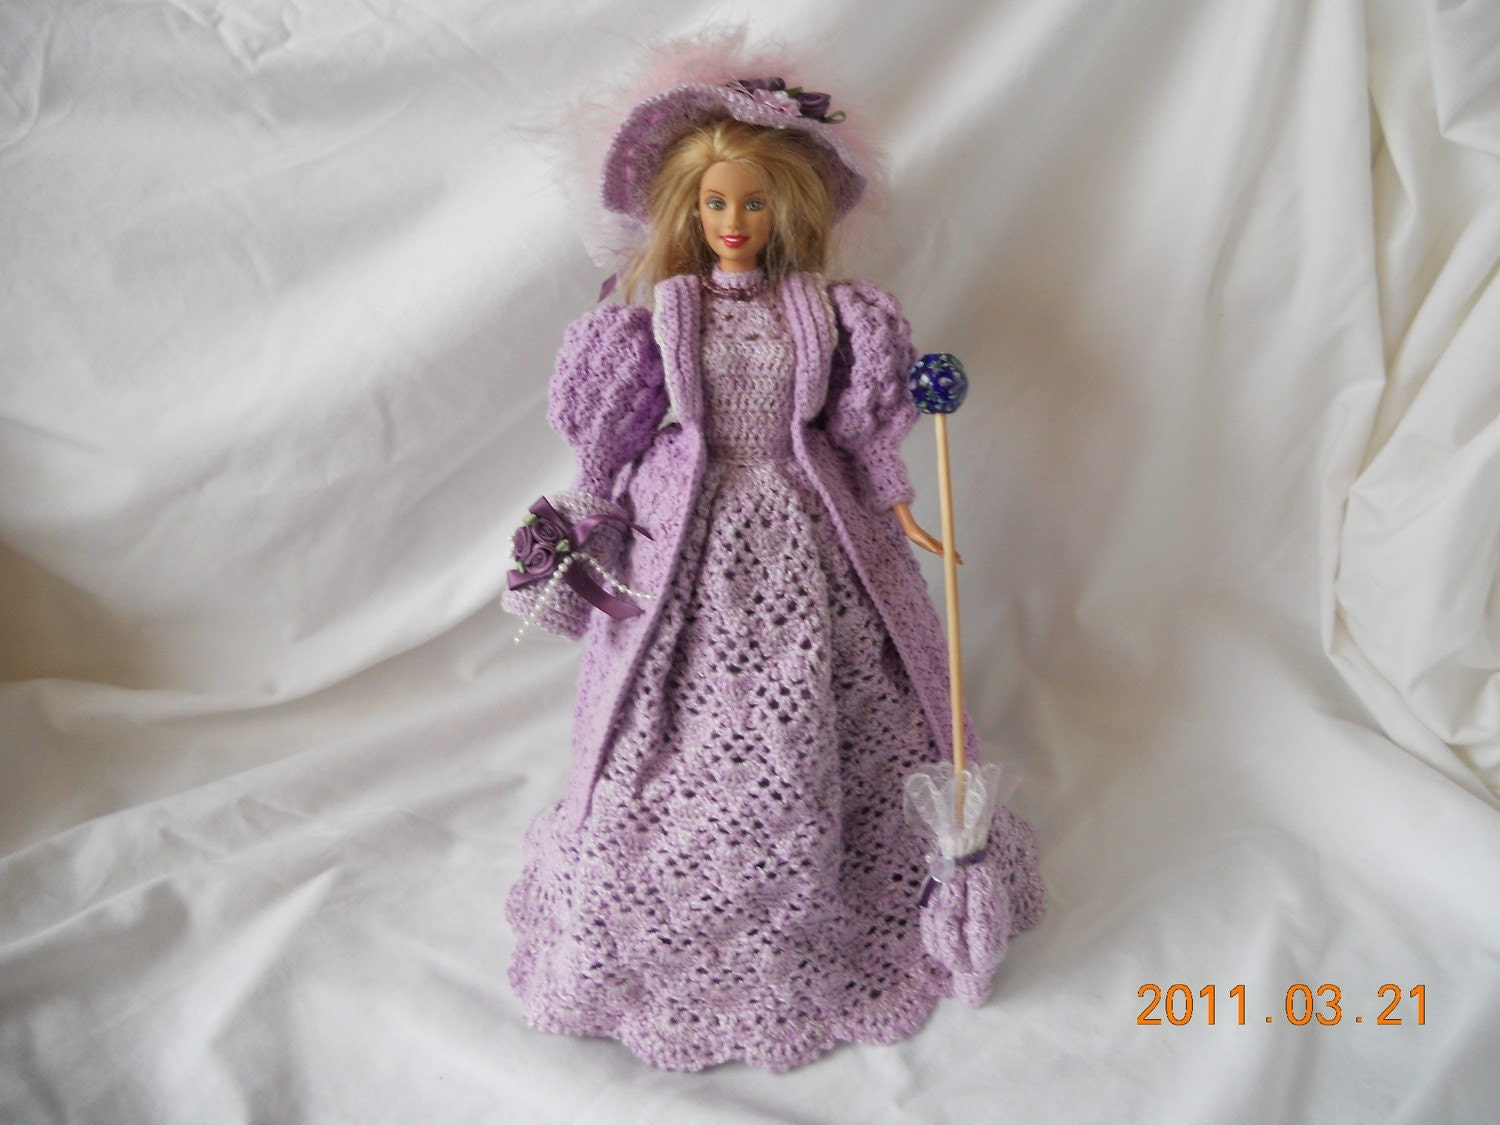 How to Make Free Barbie Crocheted Clothes | eHow.com